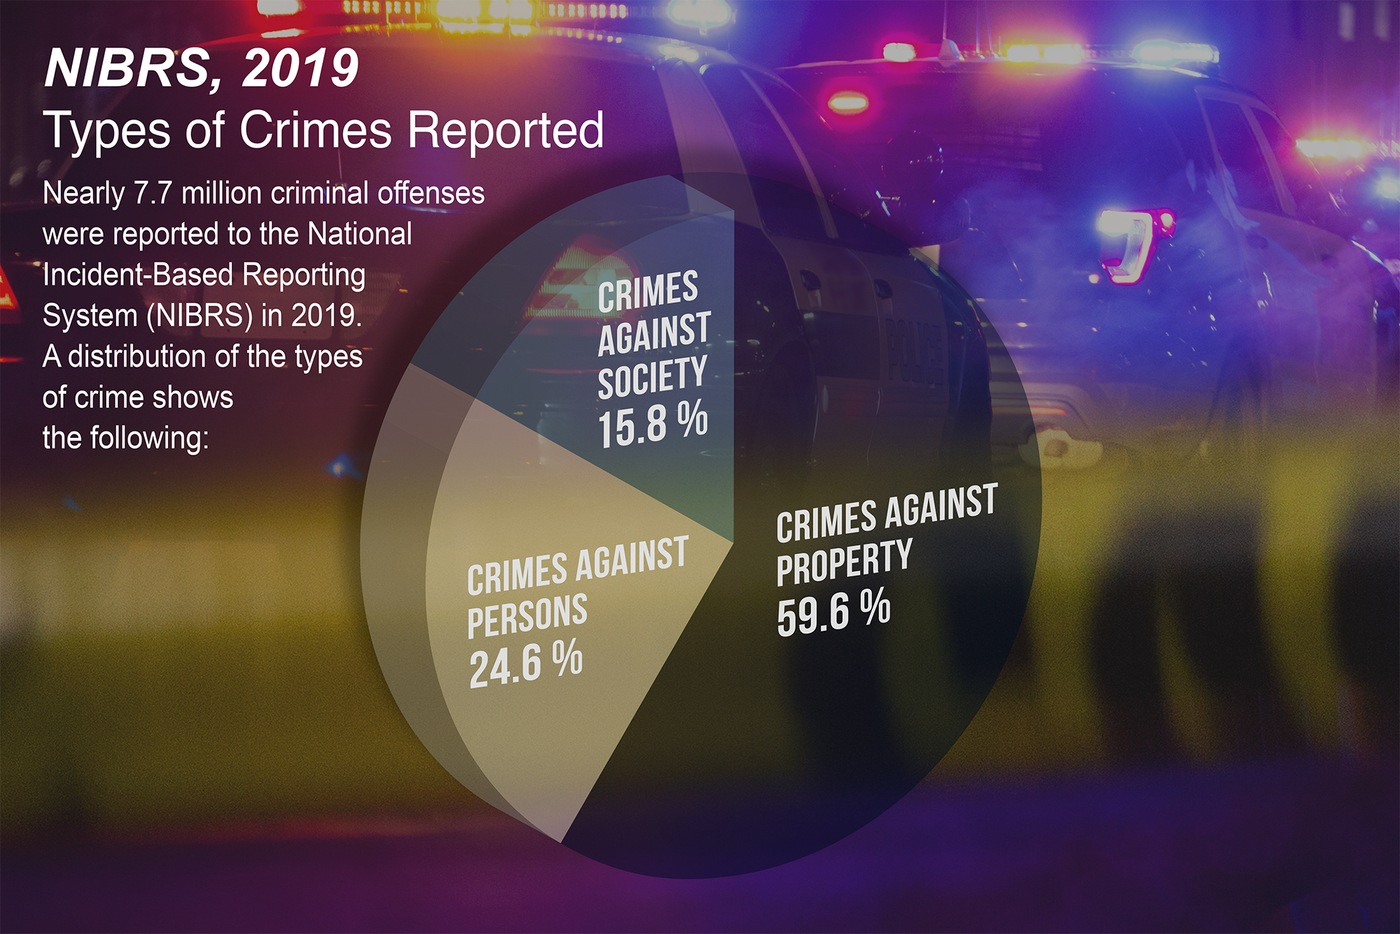 Pie chart showing the breakdown of types of crimes reported in the NIBRS, 2019 report.